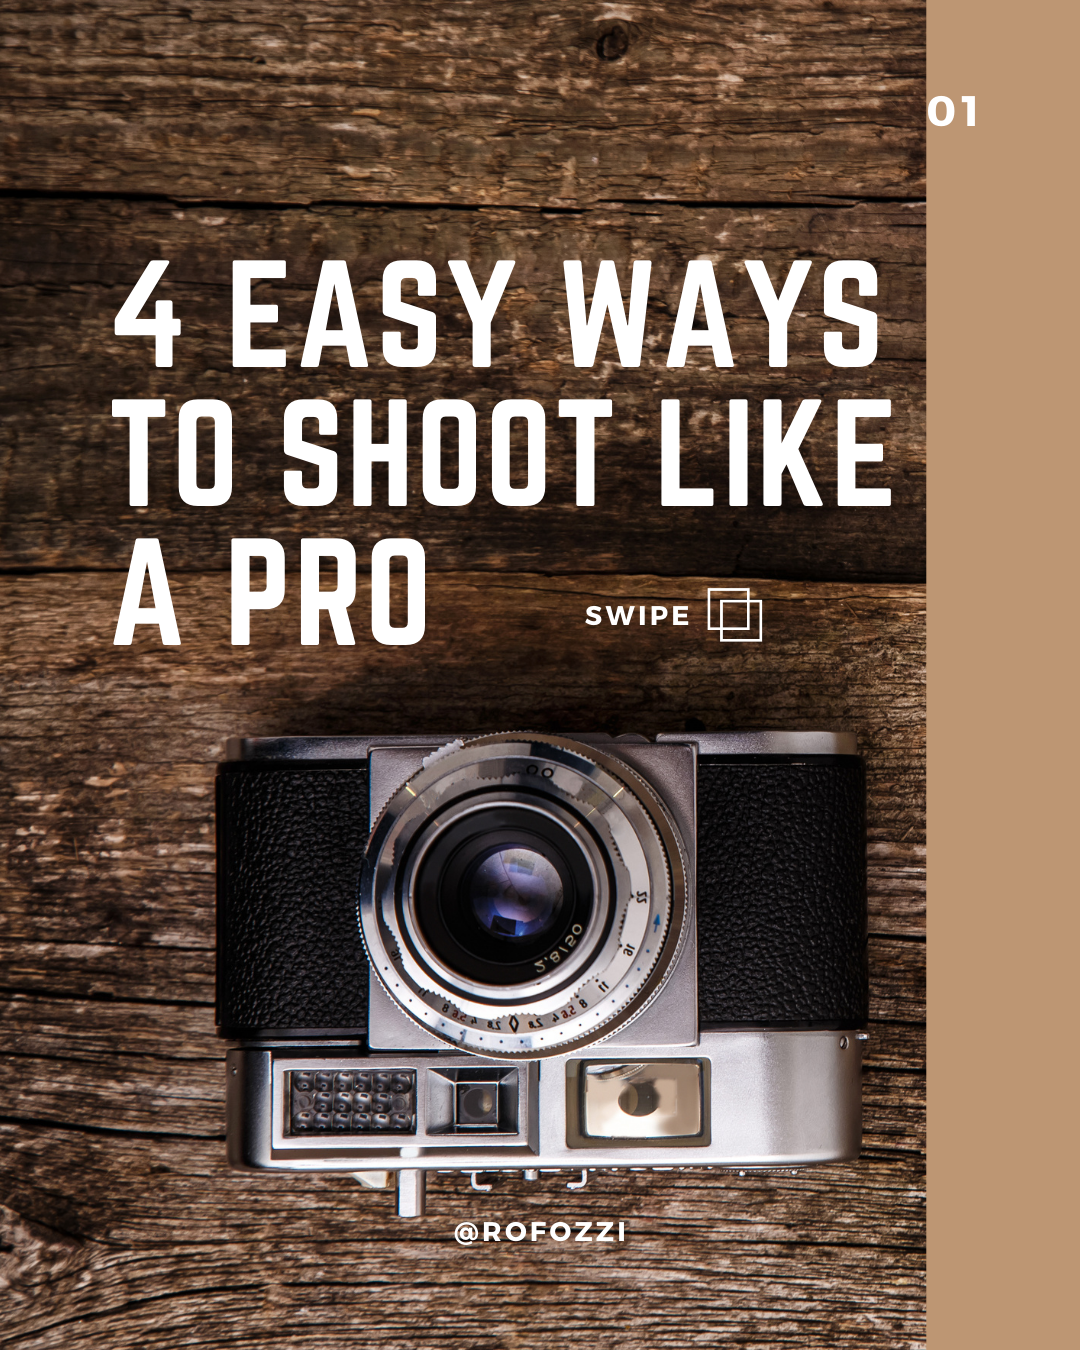 4 Easy Ways to Shoot Like a Pro in 2021